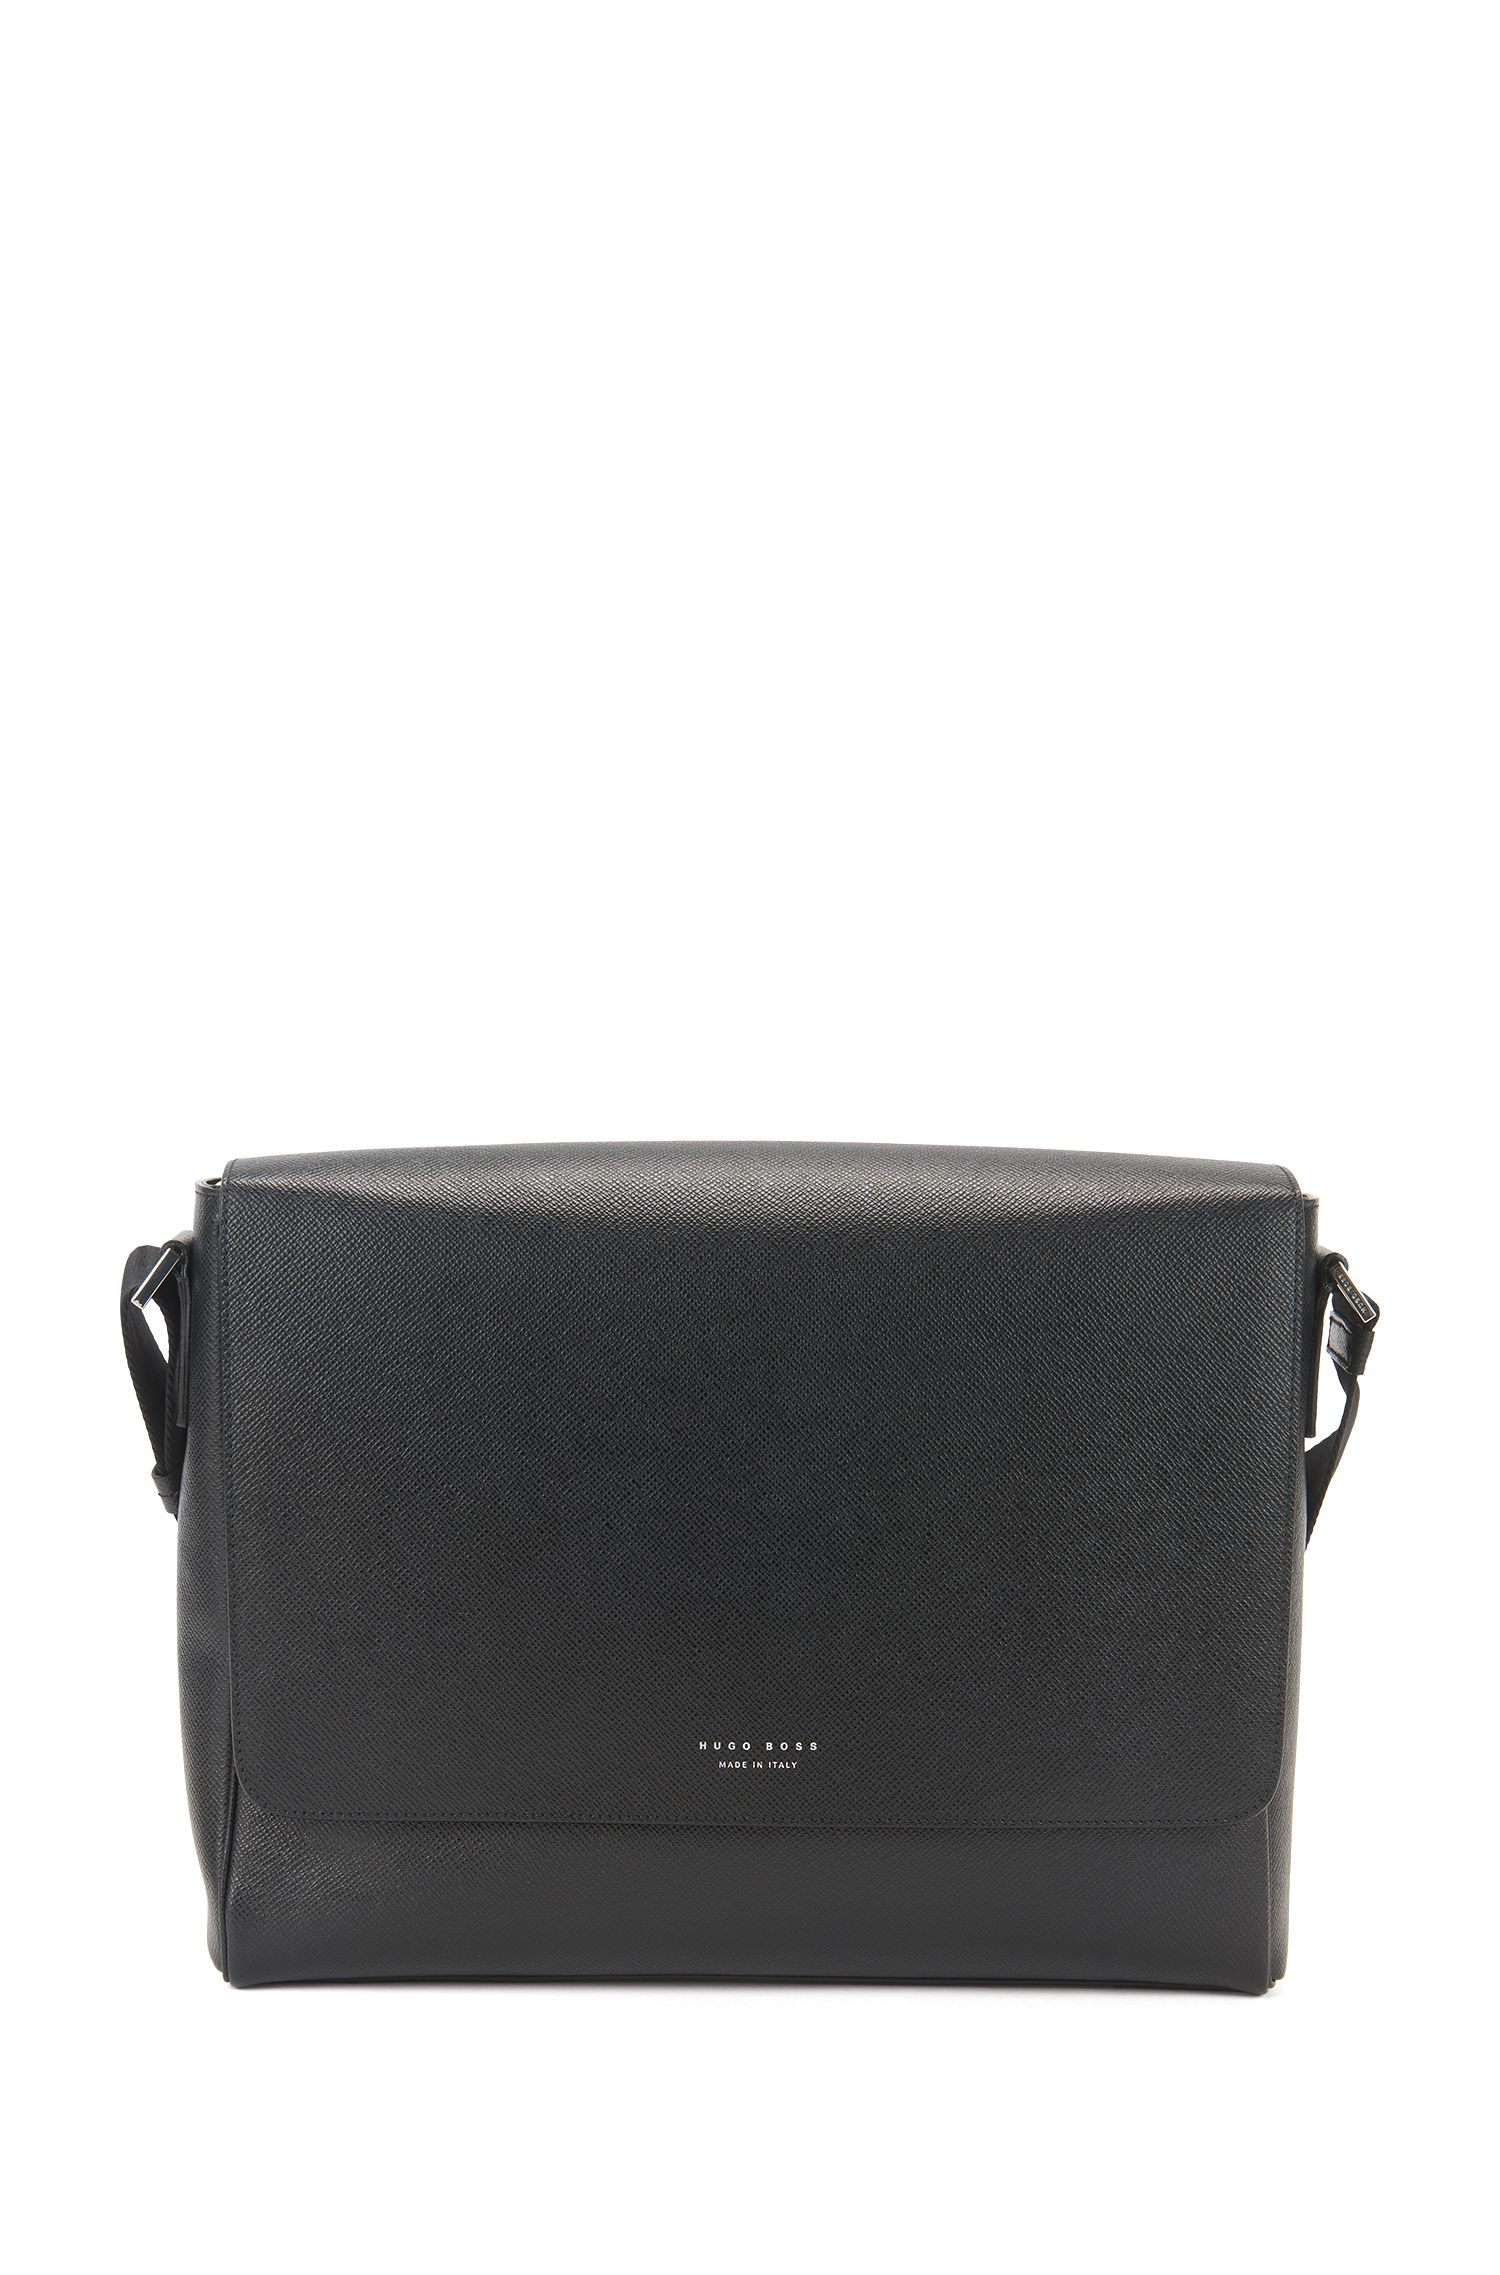 'Signature Mess Flap' | Leather Messenger Bag, Shoulder Strap